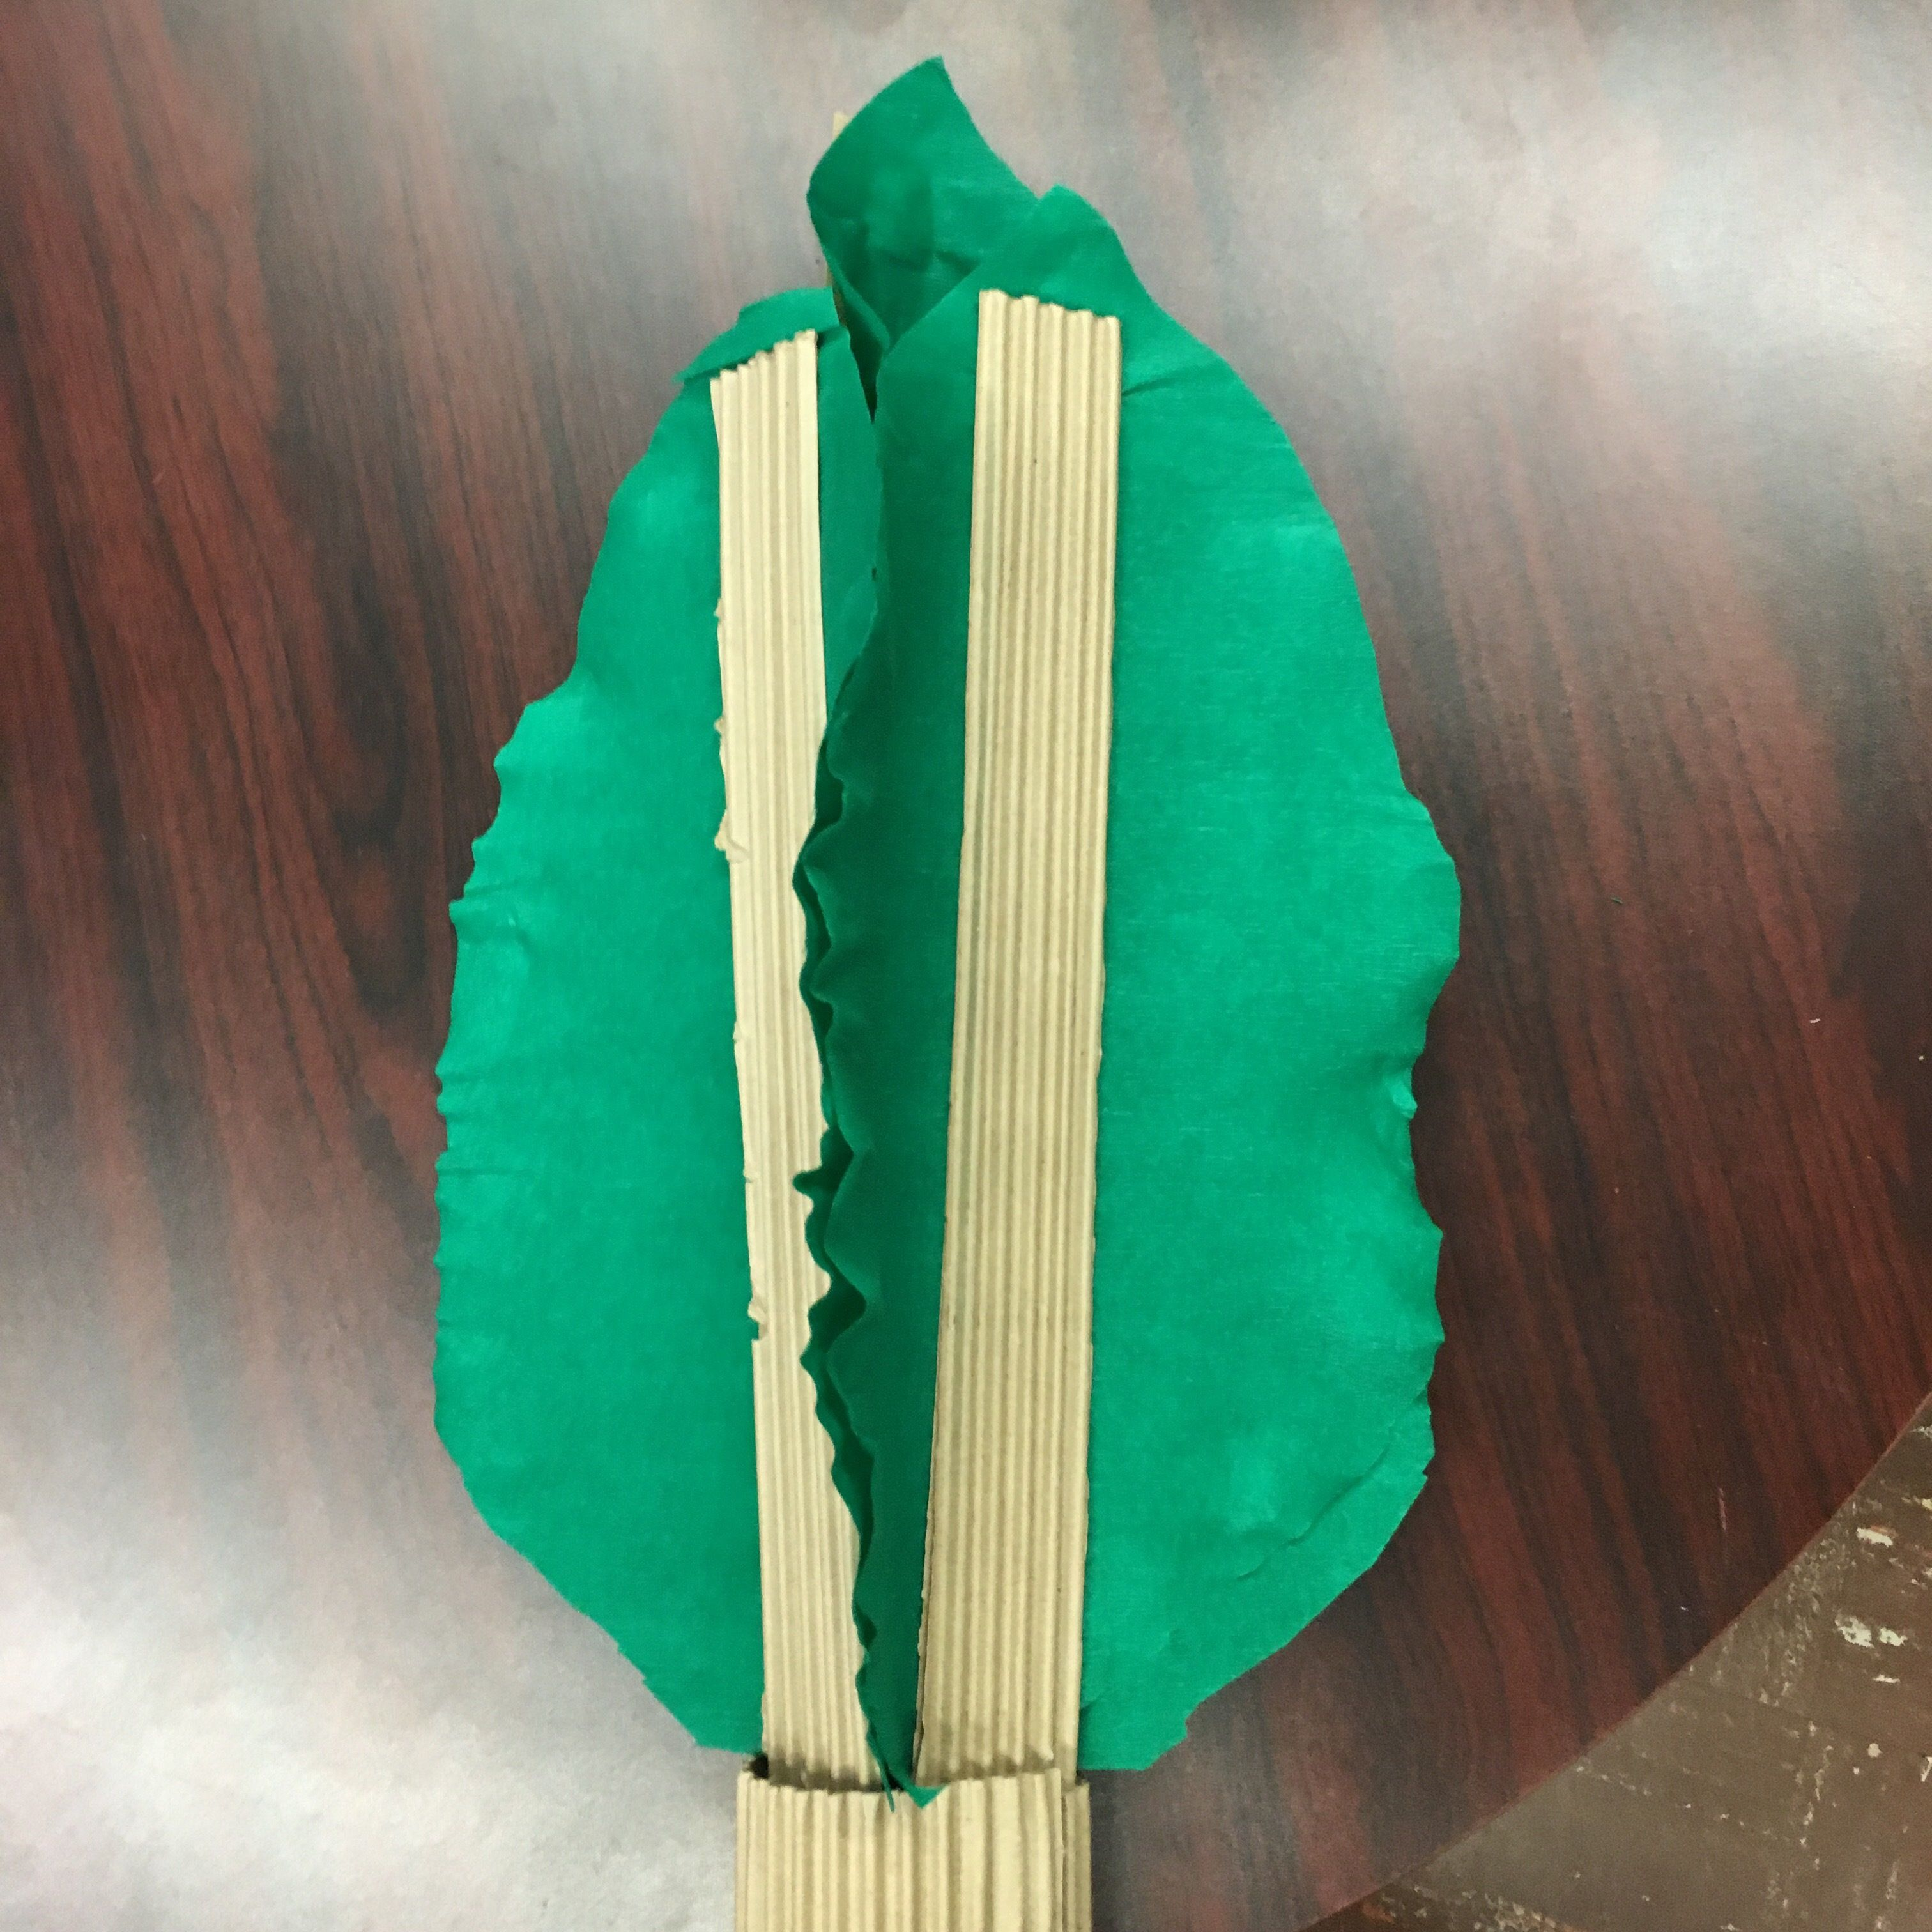 Easy DIY Cardboard and Tissue Paper Palm Tree Celebrate